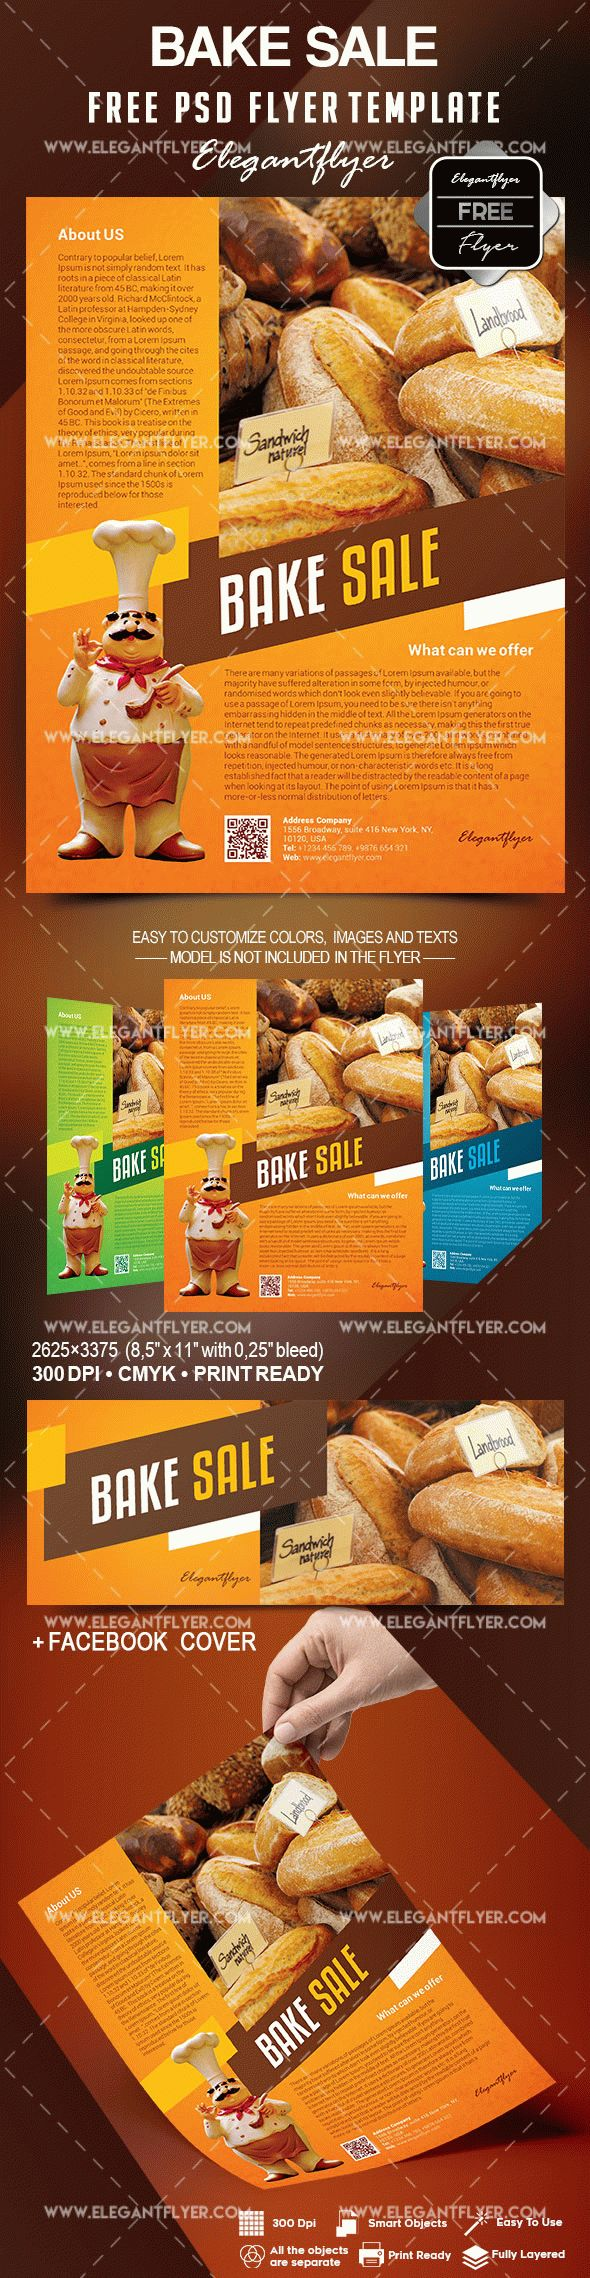 Free Bake Sale Flyer Template in Photoshop